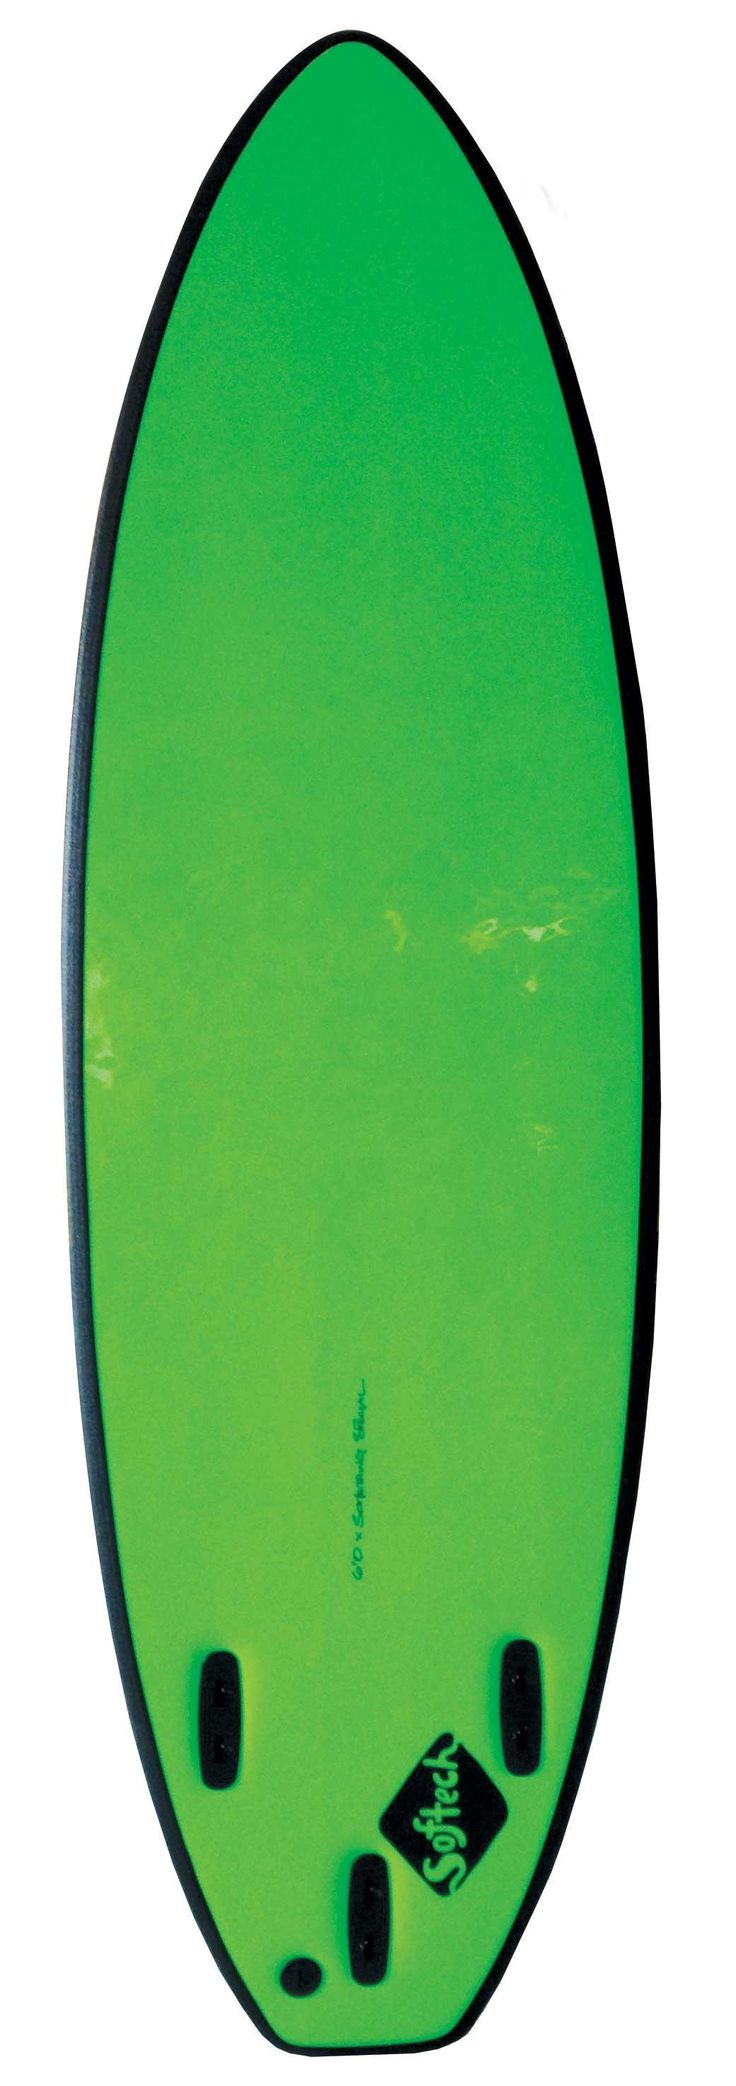 SOFTECH SOFT SURFBOARD Tom Carroll DSS Comp Thruster - 6'6 Your Local Bodyboard Shop - Australia & Worldwide